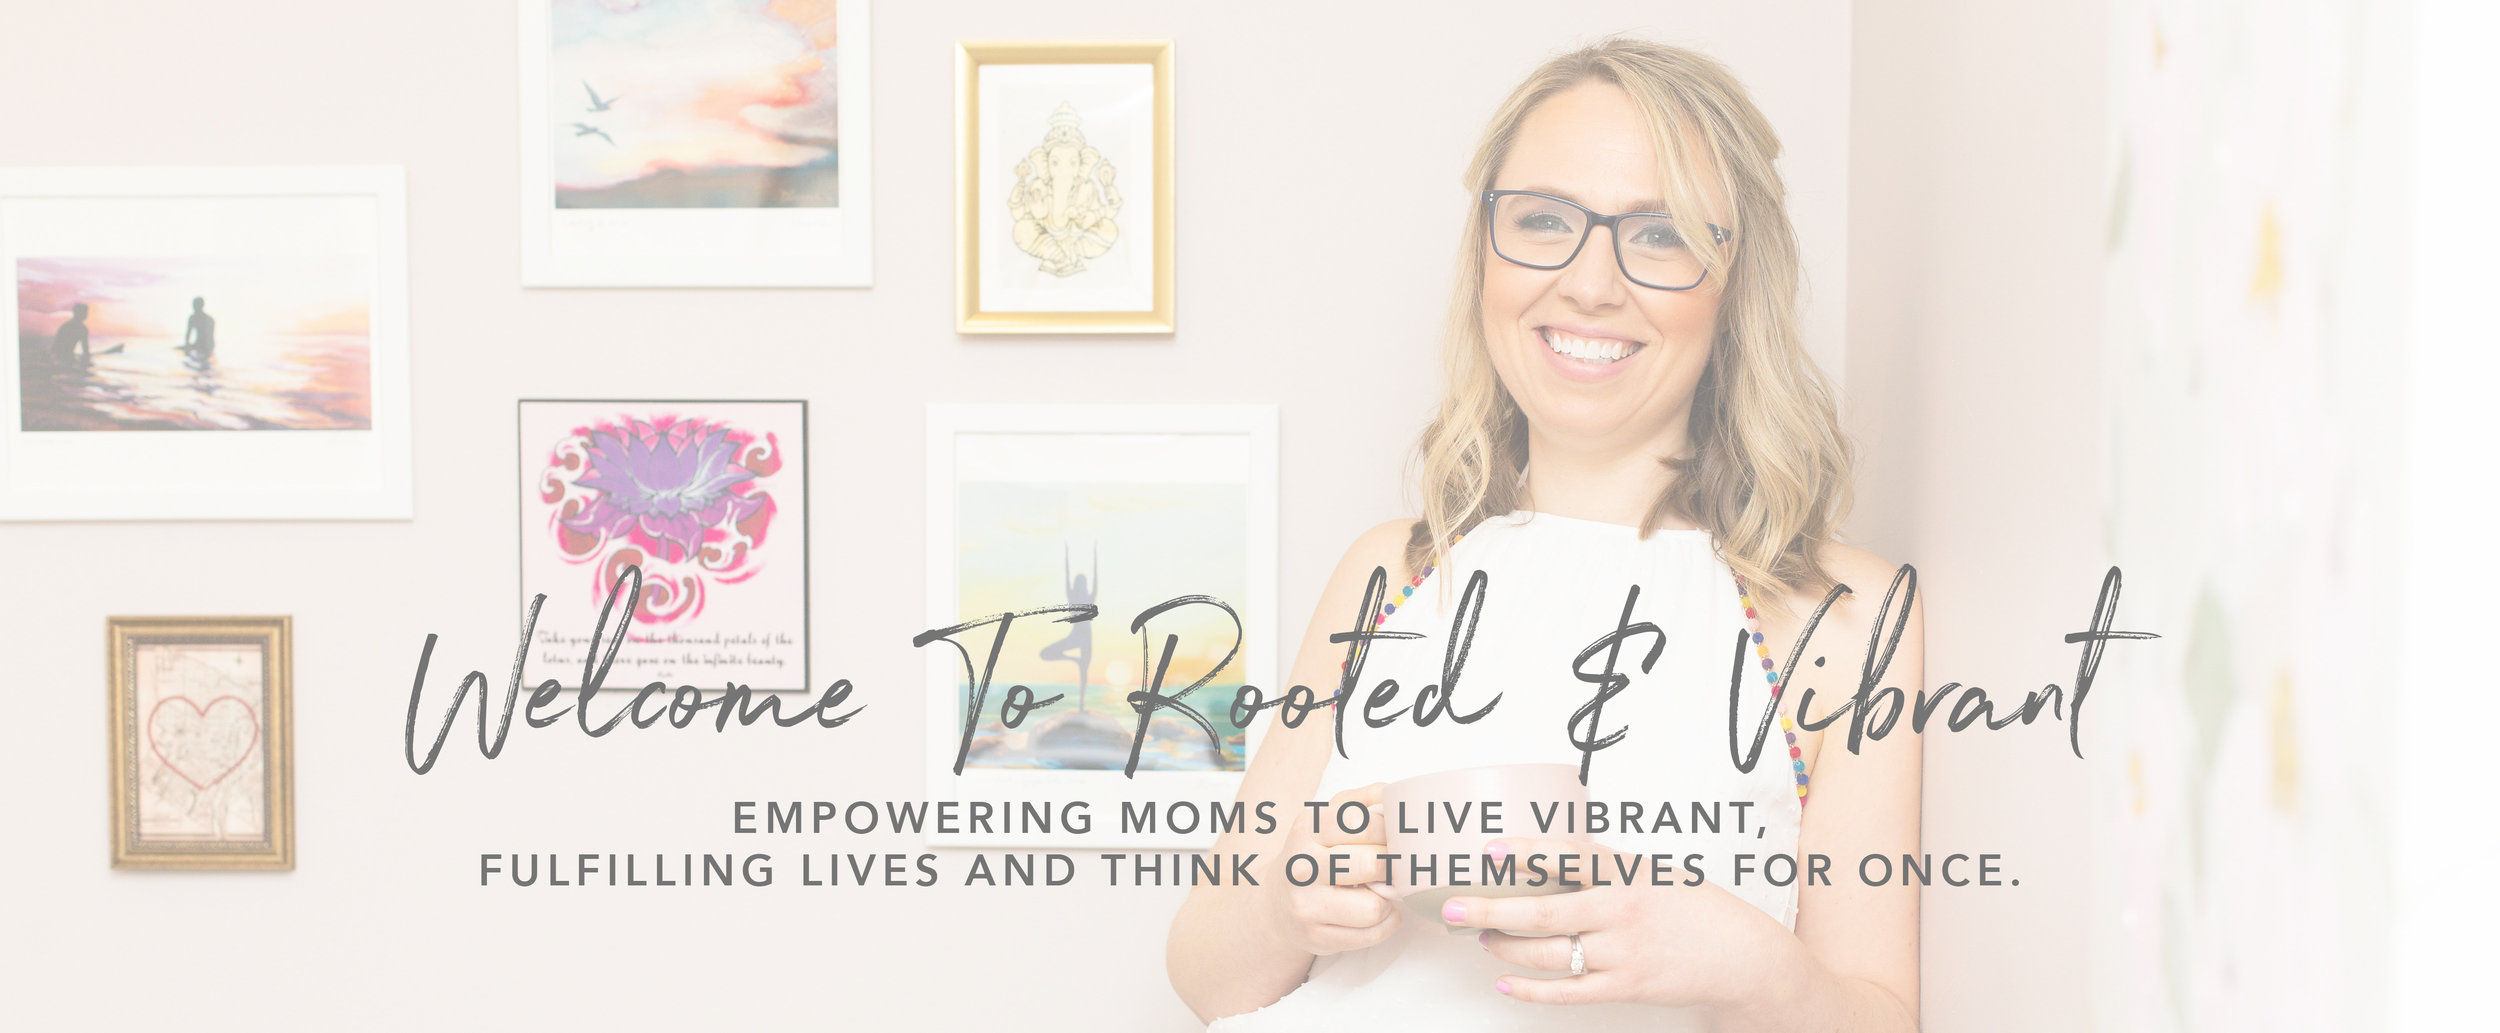 Welcome to Rooted & Vibrant. Empowering moms to live vibrant and fulfilling lives for themselves and their families.